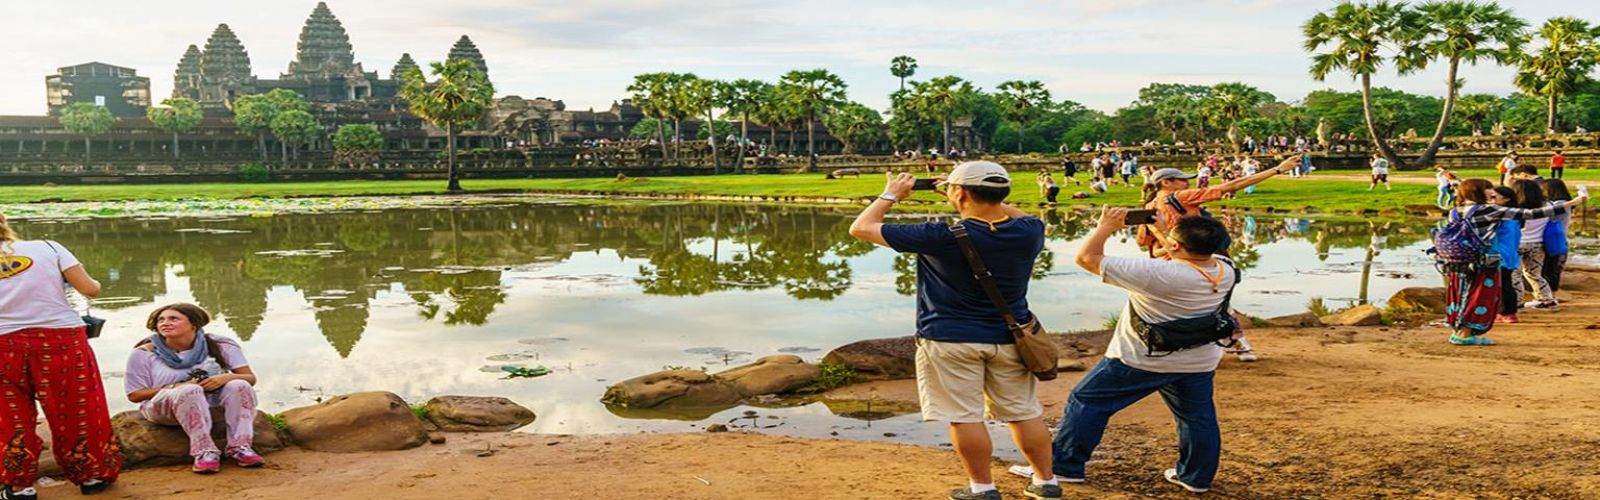 Cambodia Family Package Tours